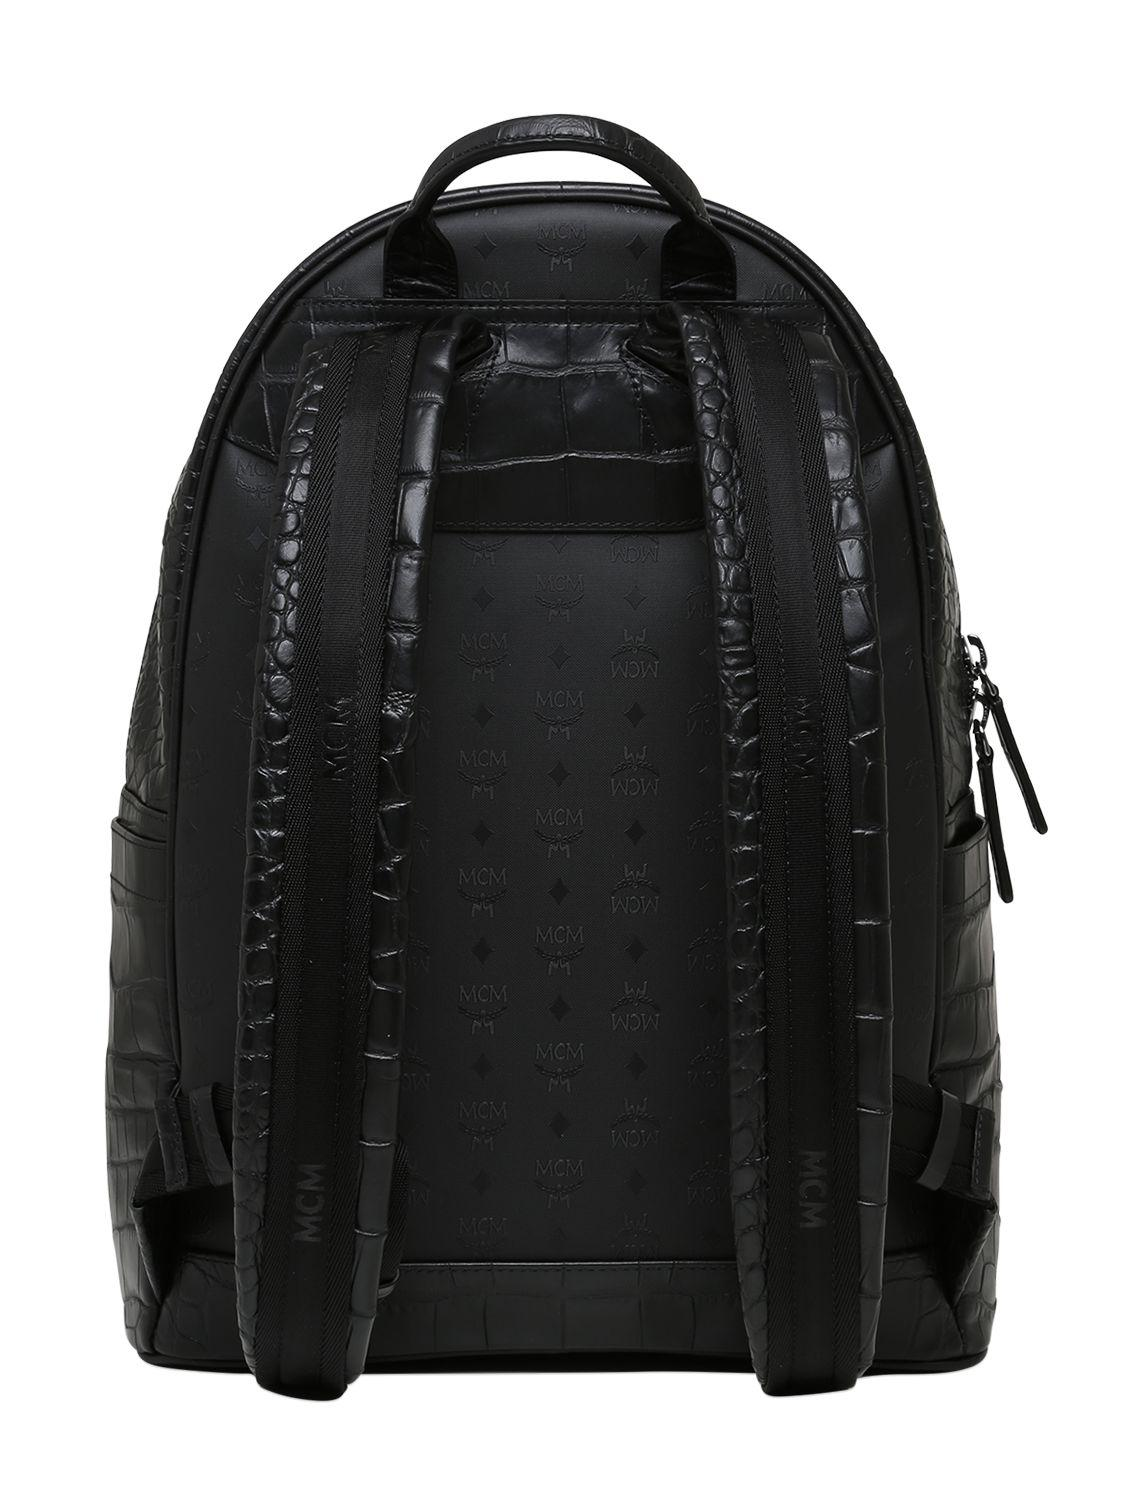 MCM Medium Stark Luxus Leather Backpack in Black